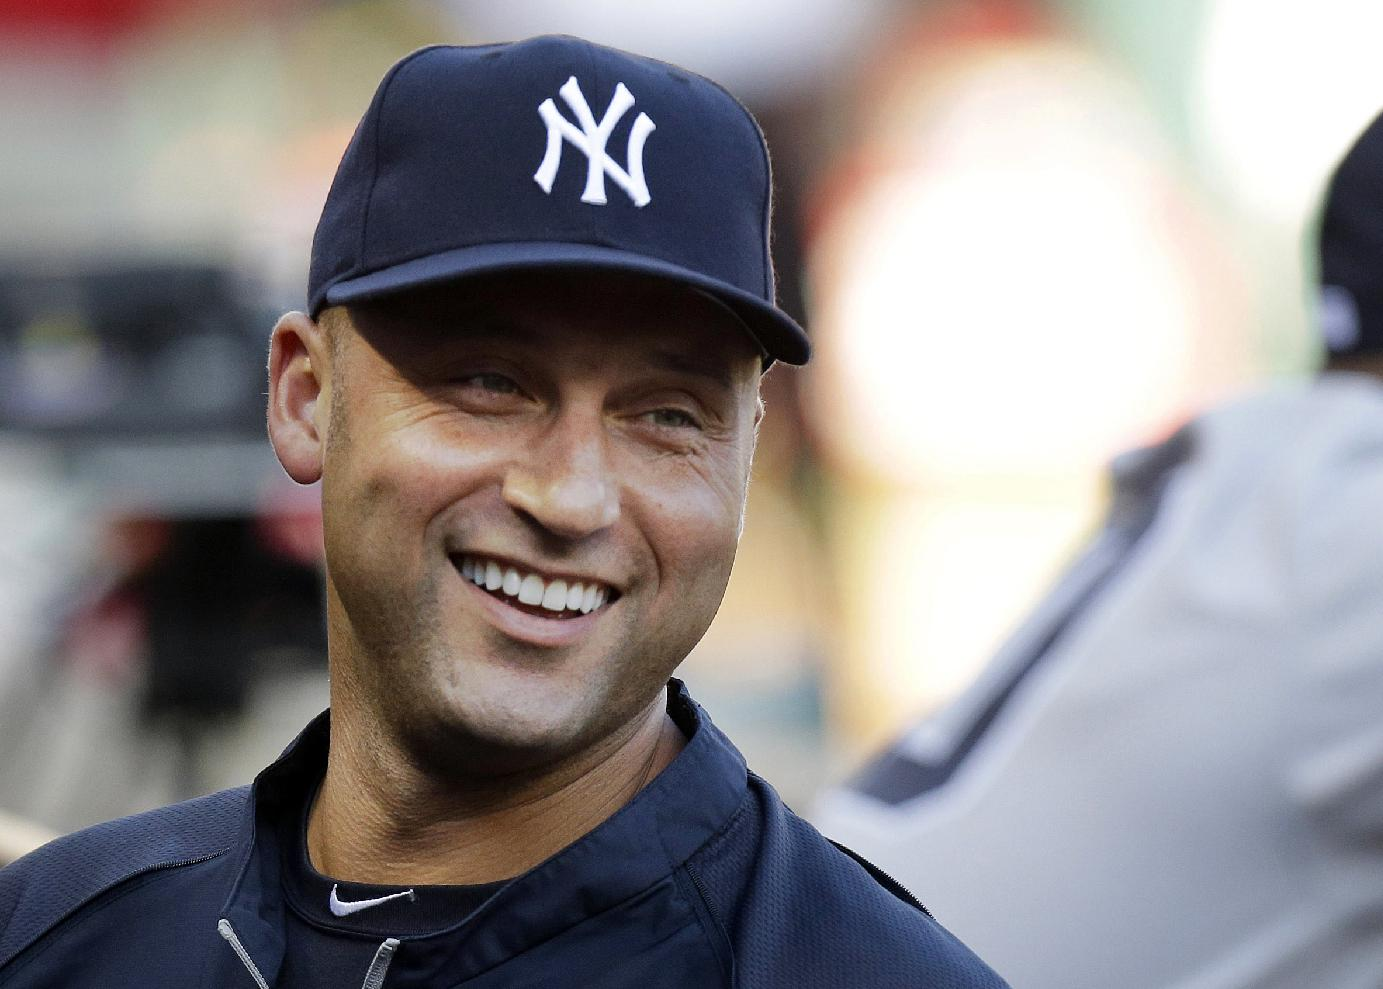 Jeter deal leaves Yanks about $80M before tax